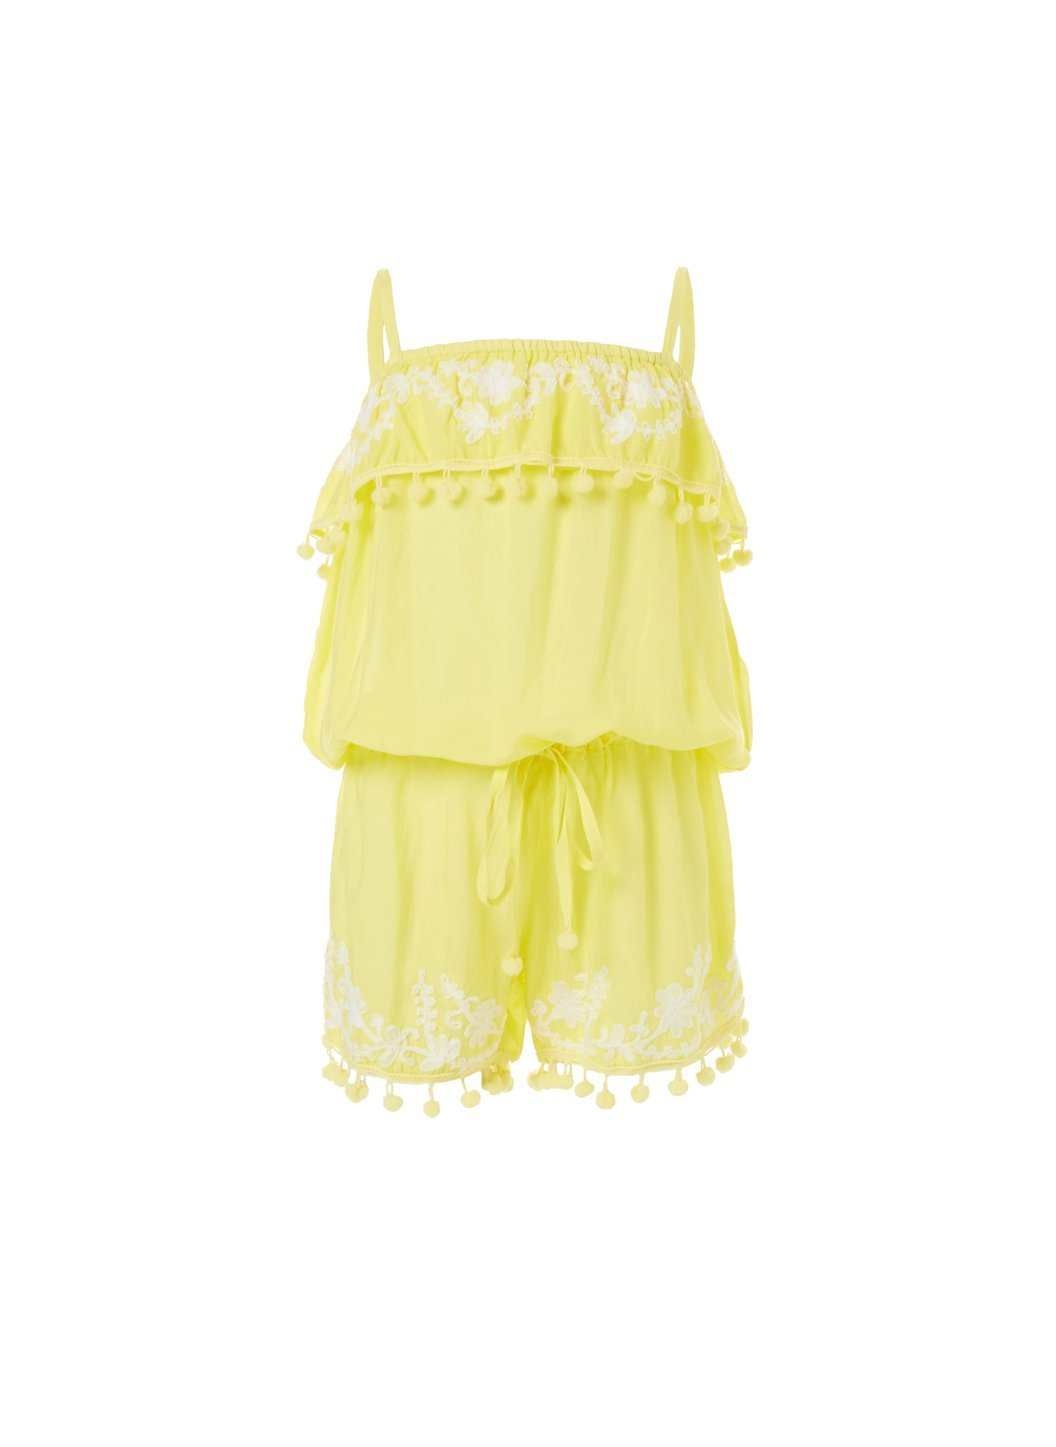 baby eisha yellow white playsuit 2019